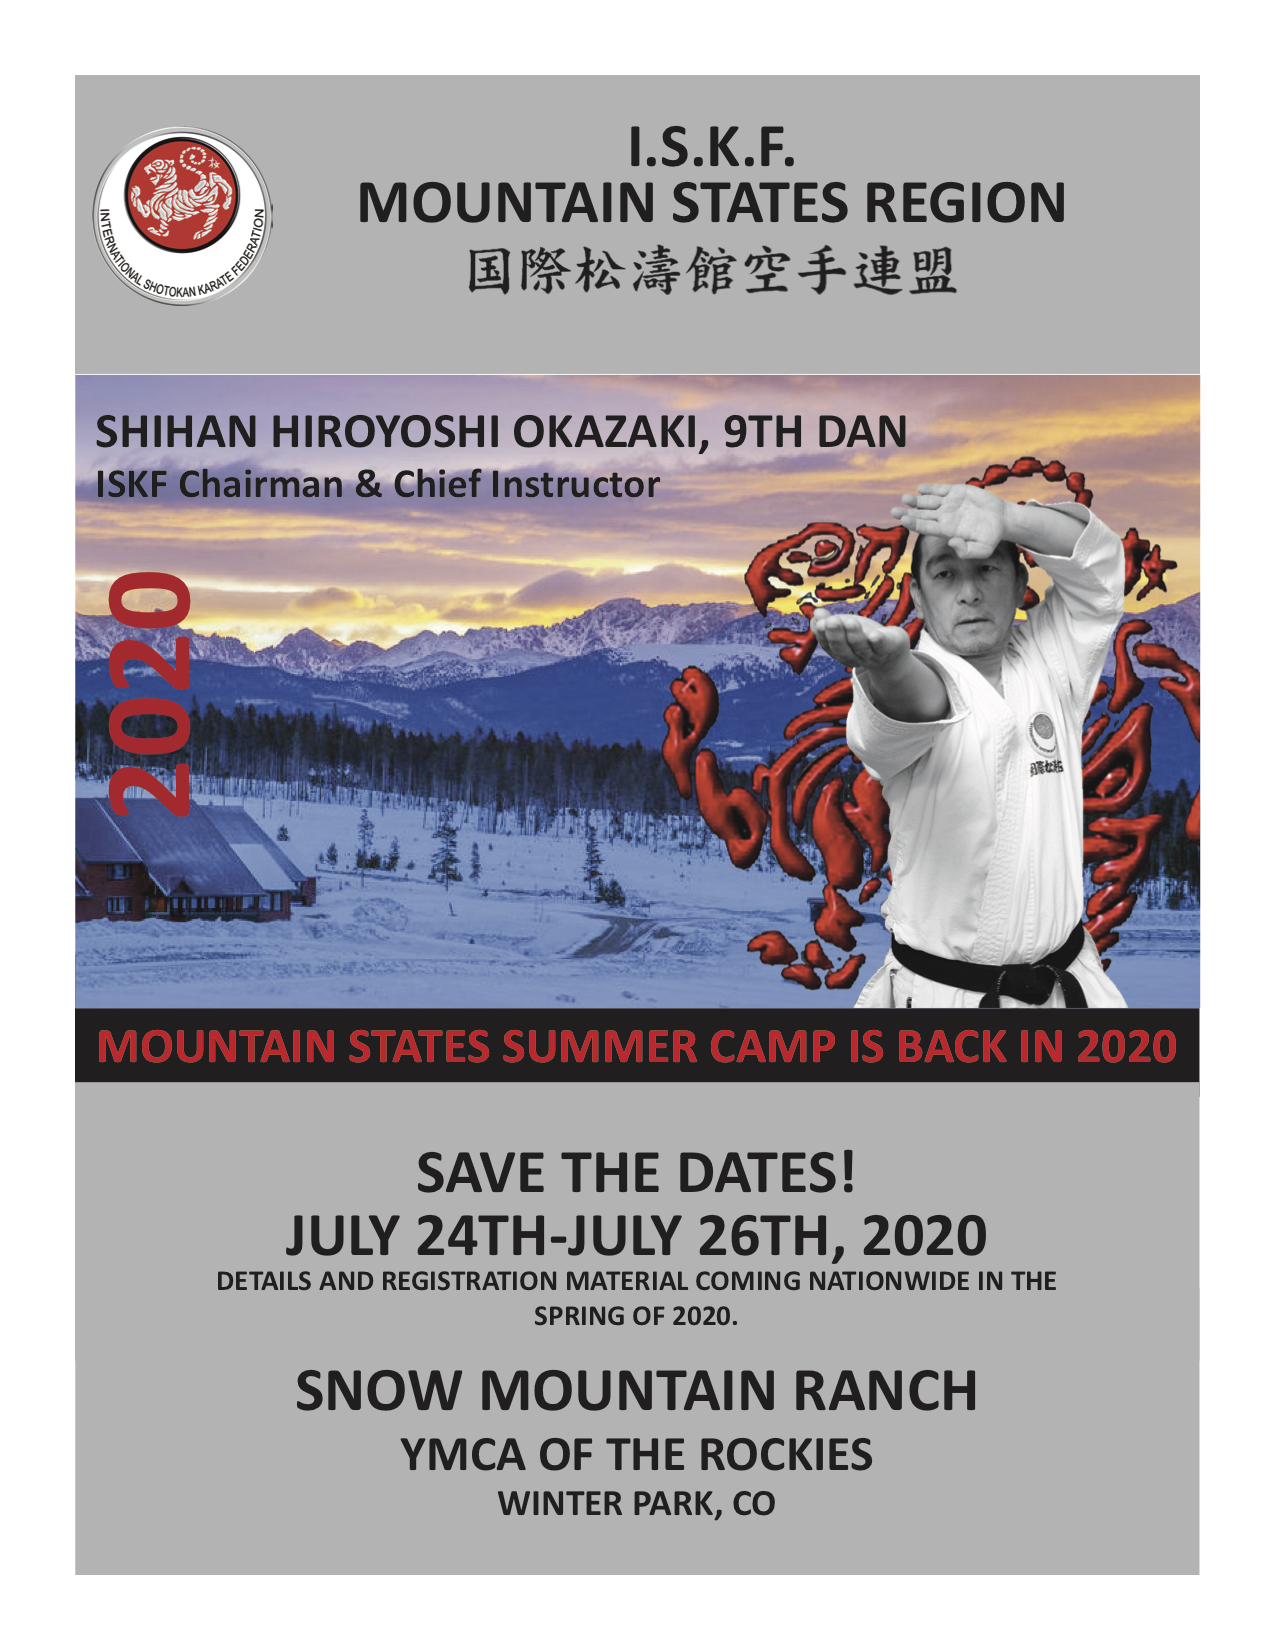 2020 ISKF Mountain States Summer Camp with Shihan Hiroyoshi Okazaki @ Winter Park, CO, July 24-26, 2020